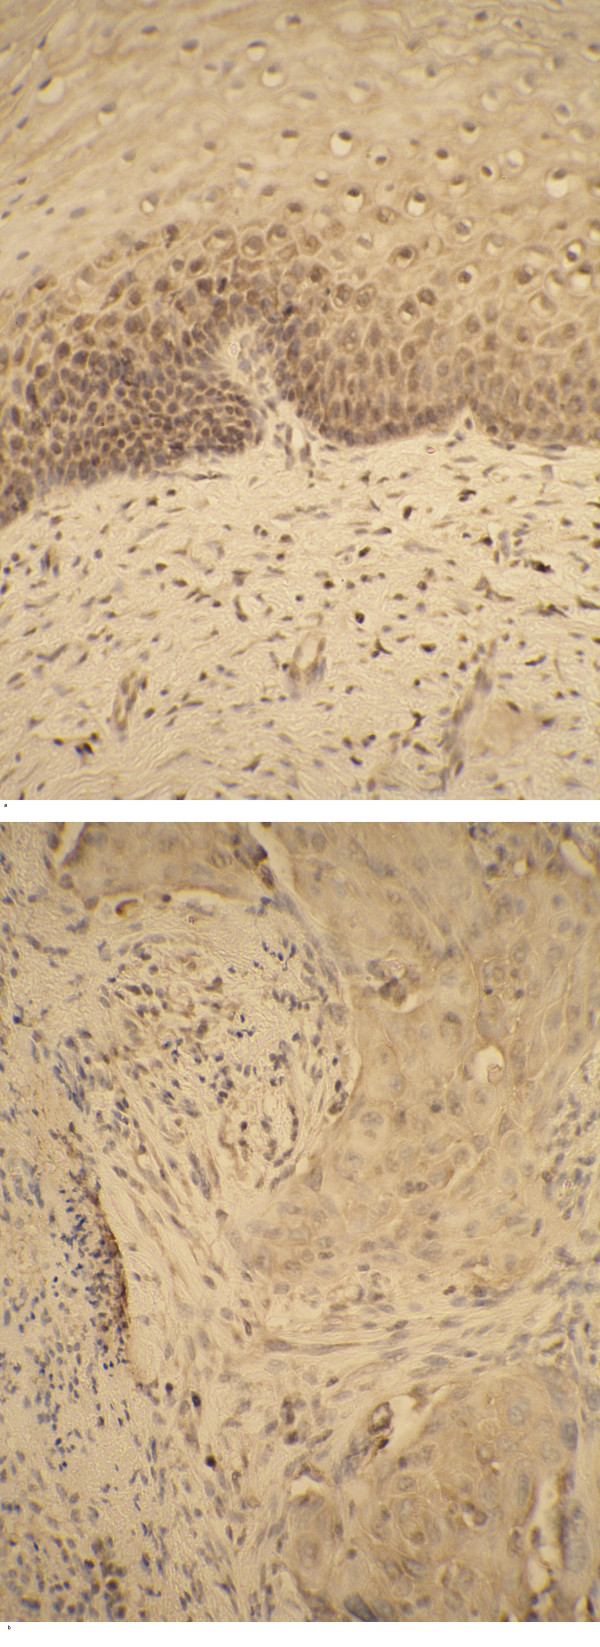 TNF-α positive cells in the cervix carcinoma – immunohistochemical staining of SCC specimens. Note: strong immunopositivity of the epithelial cells of control sample (a); TNF-α positive tumor cells and peritumoral stroma in cervix carcinoma (b).